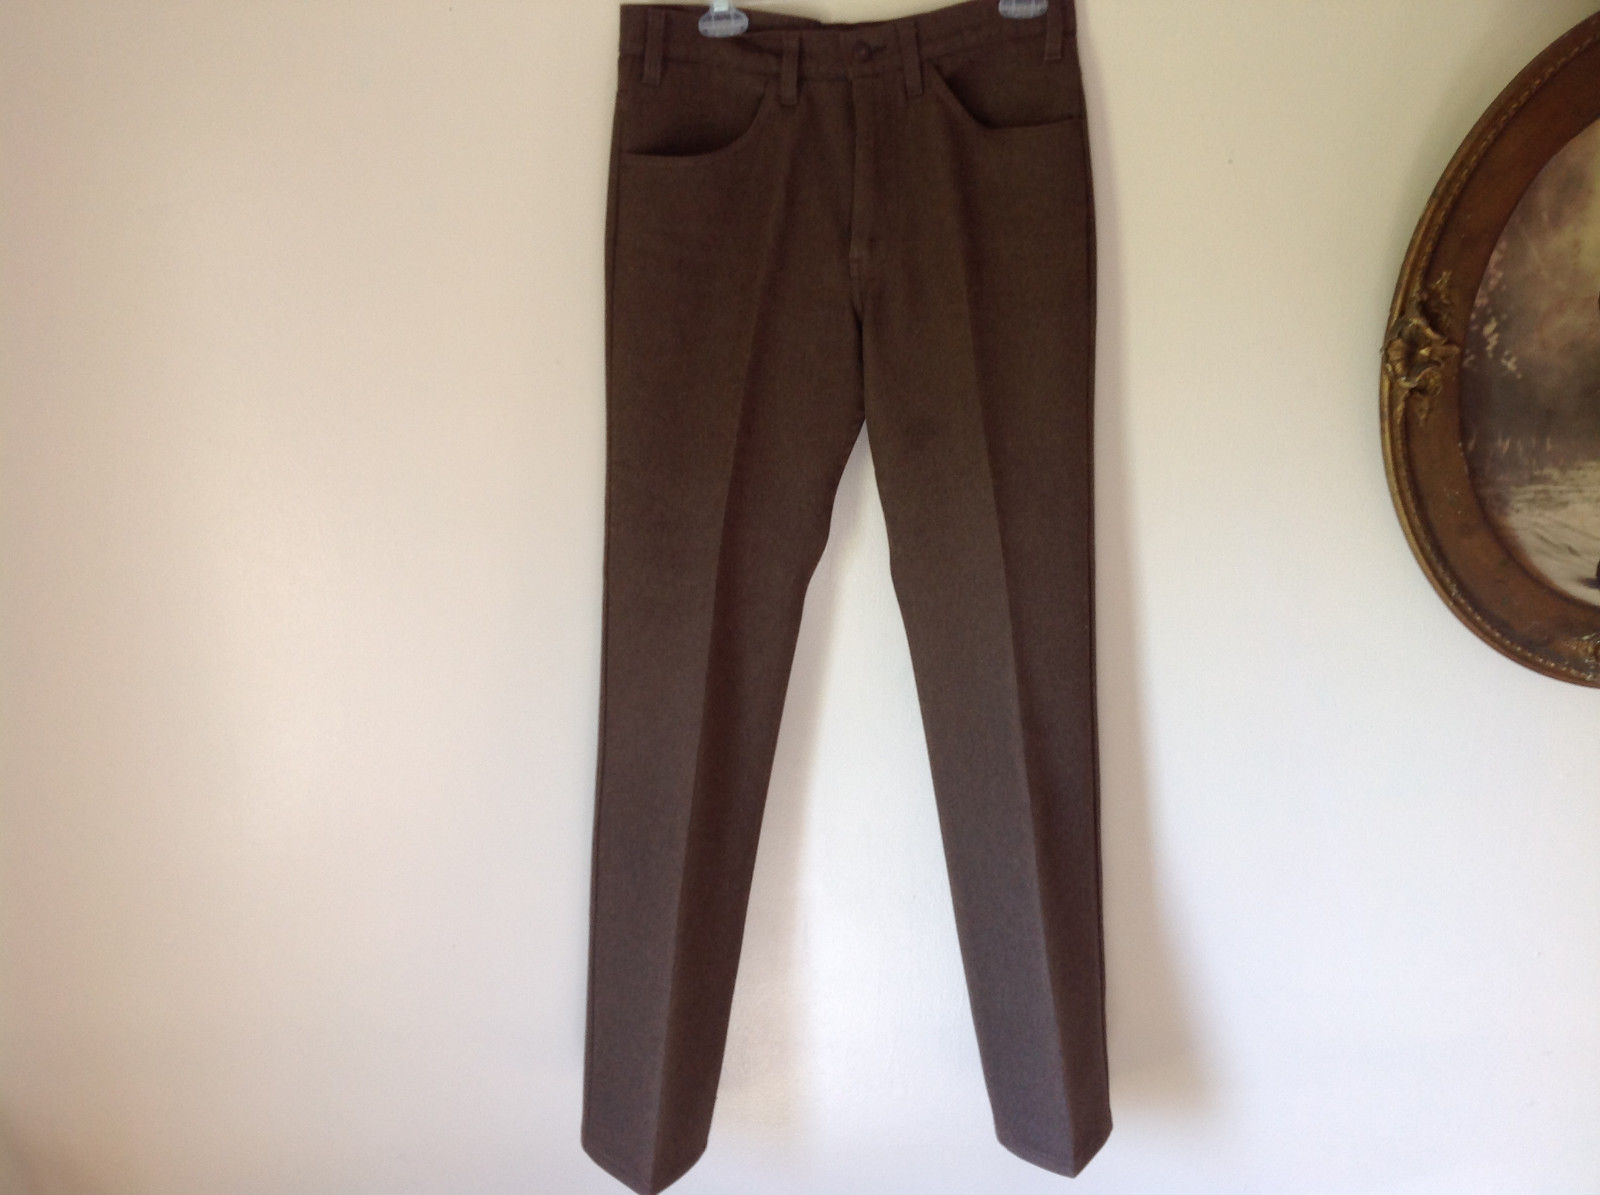 Levis Jean Like Brown High Quality Material Pants 2 Front Pockets No Size Tag